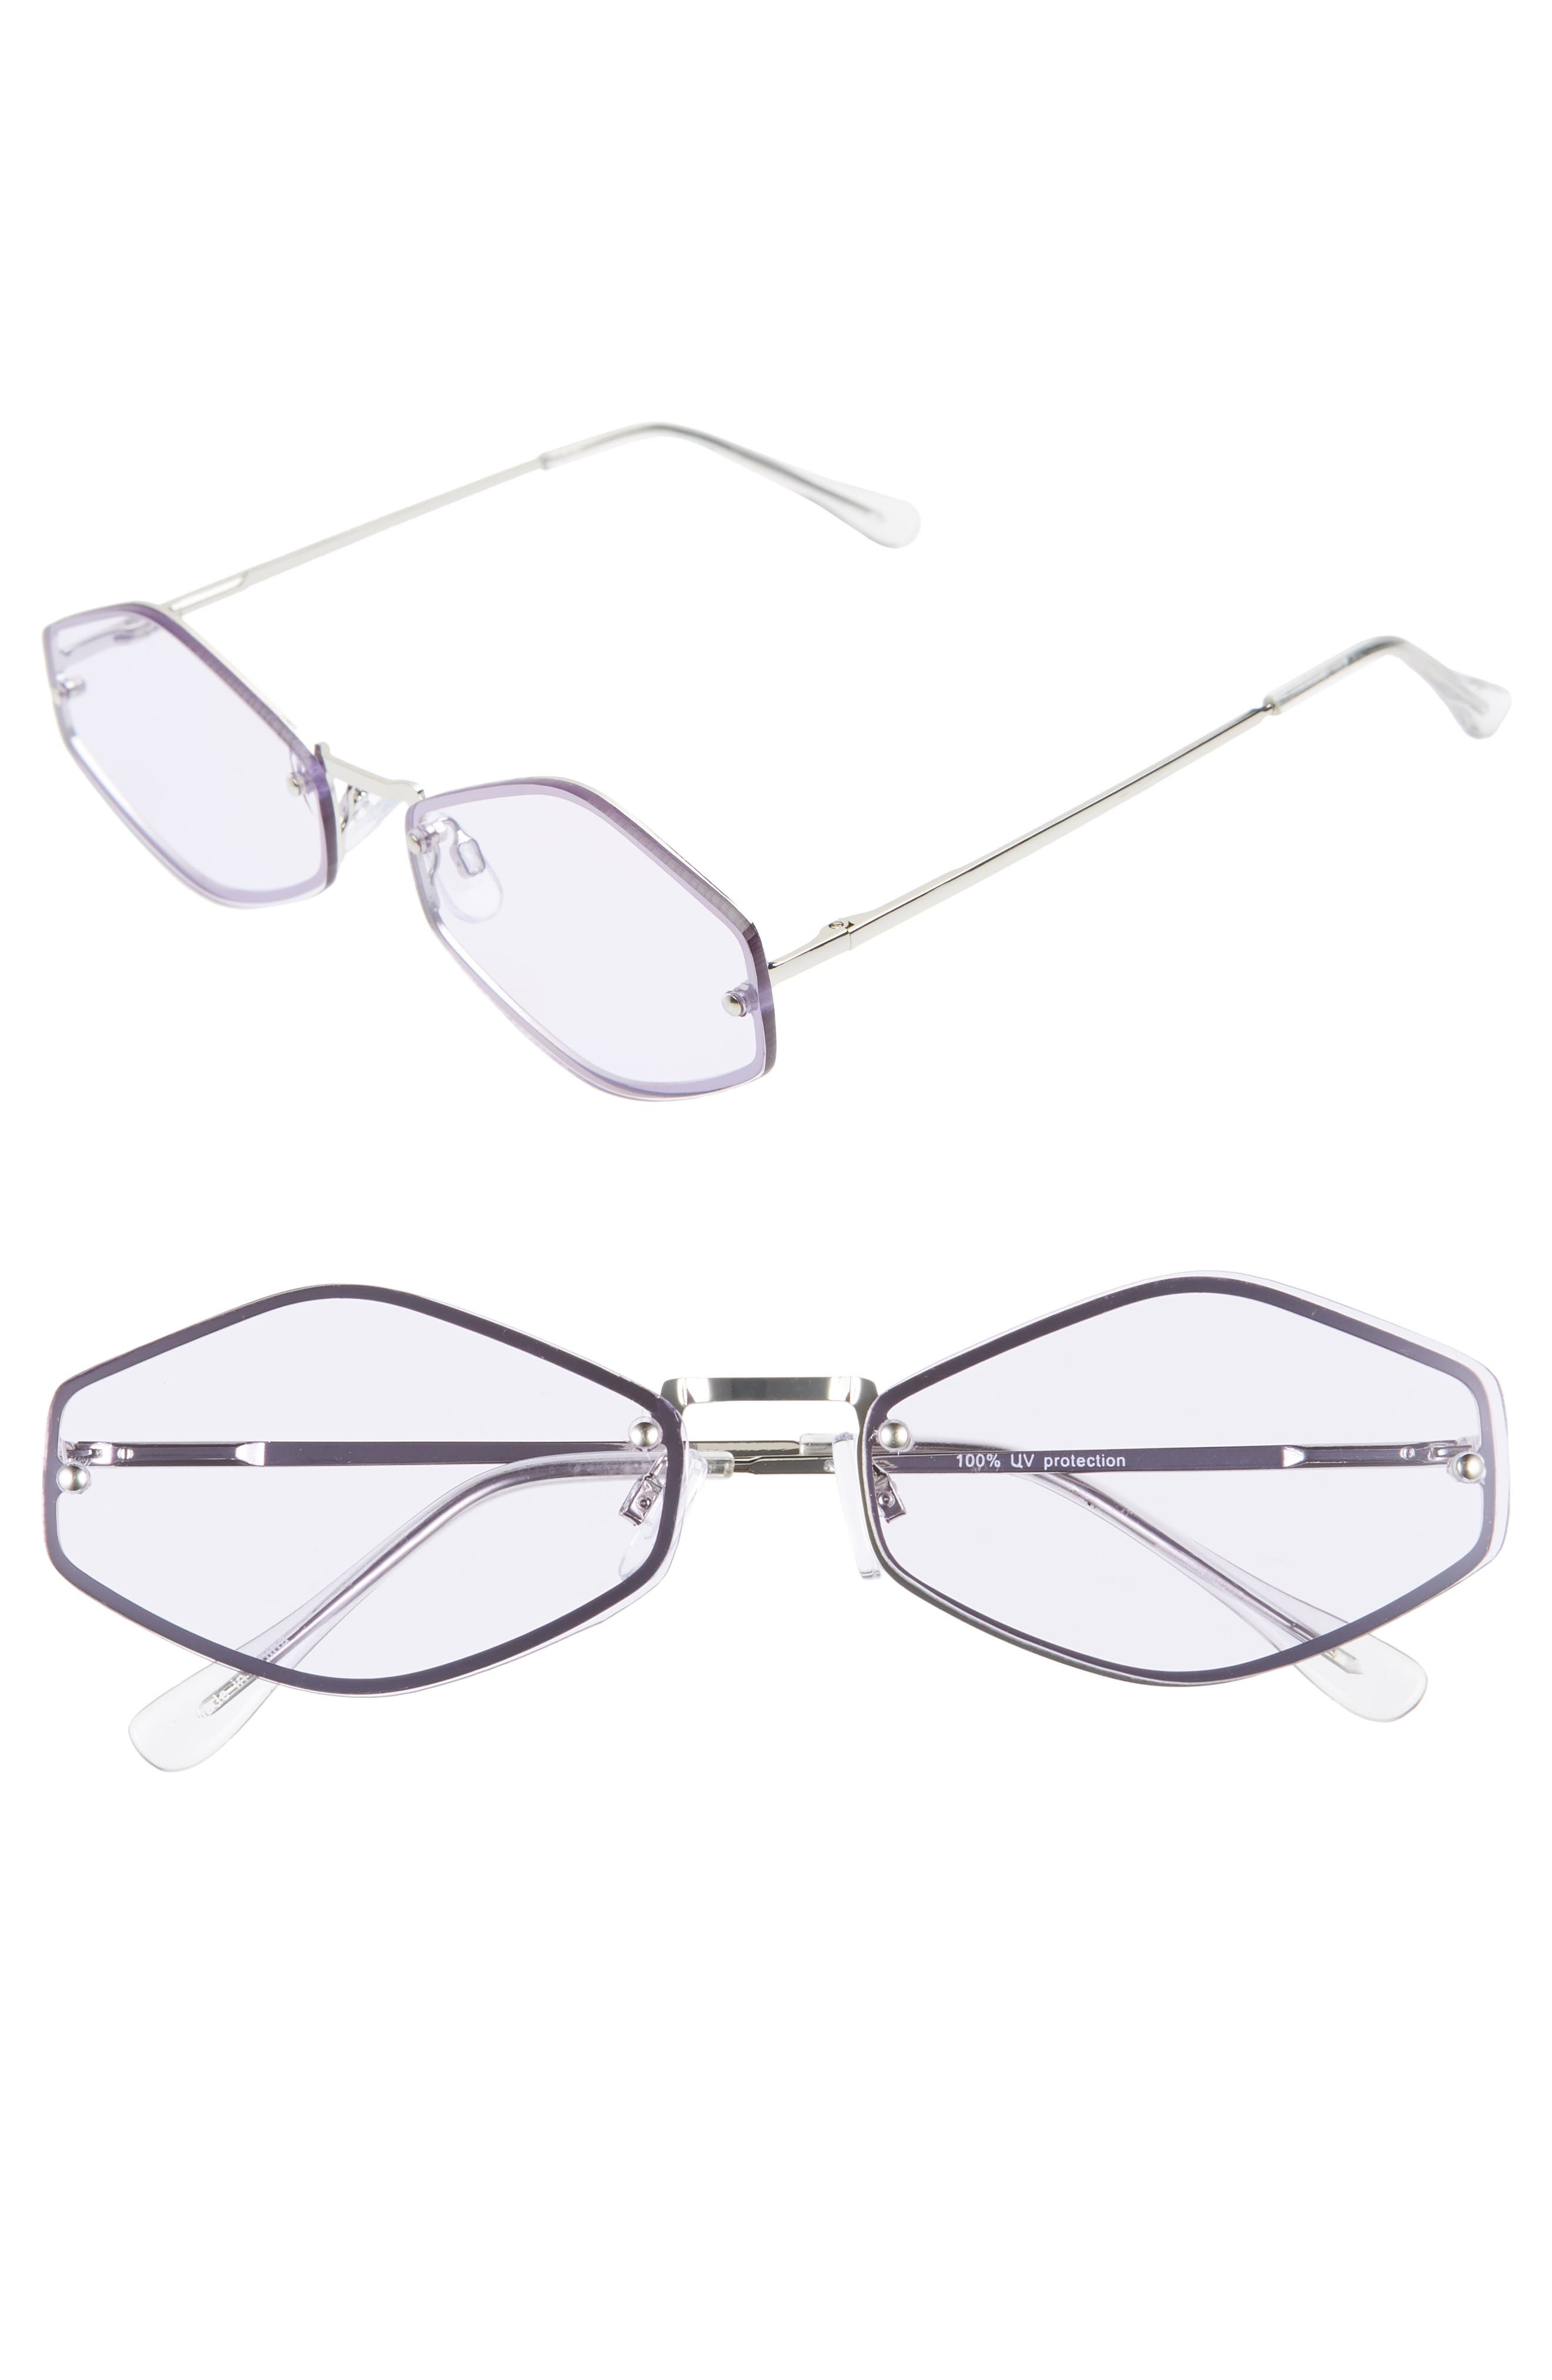 leith sunglasses for women nordstrom Blue and White Oakley Sunglasses